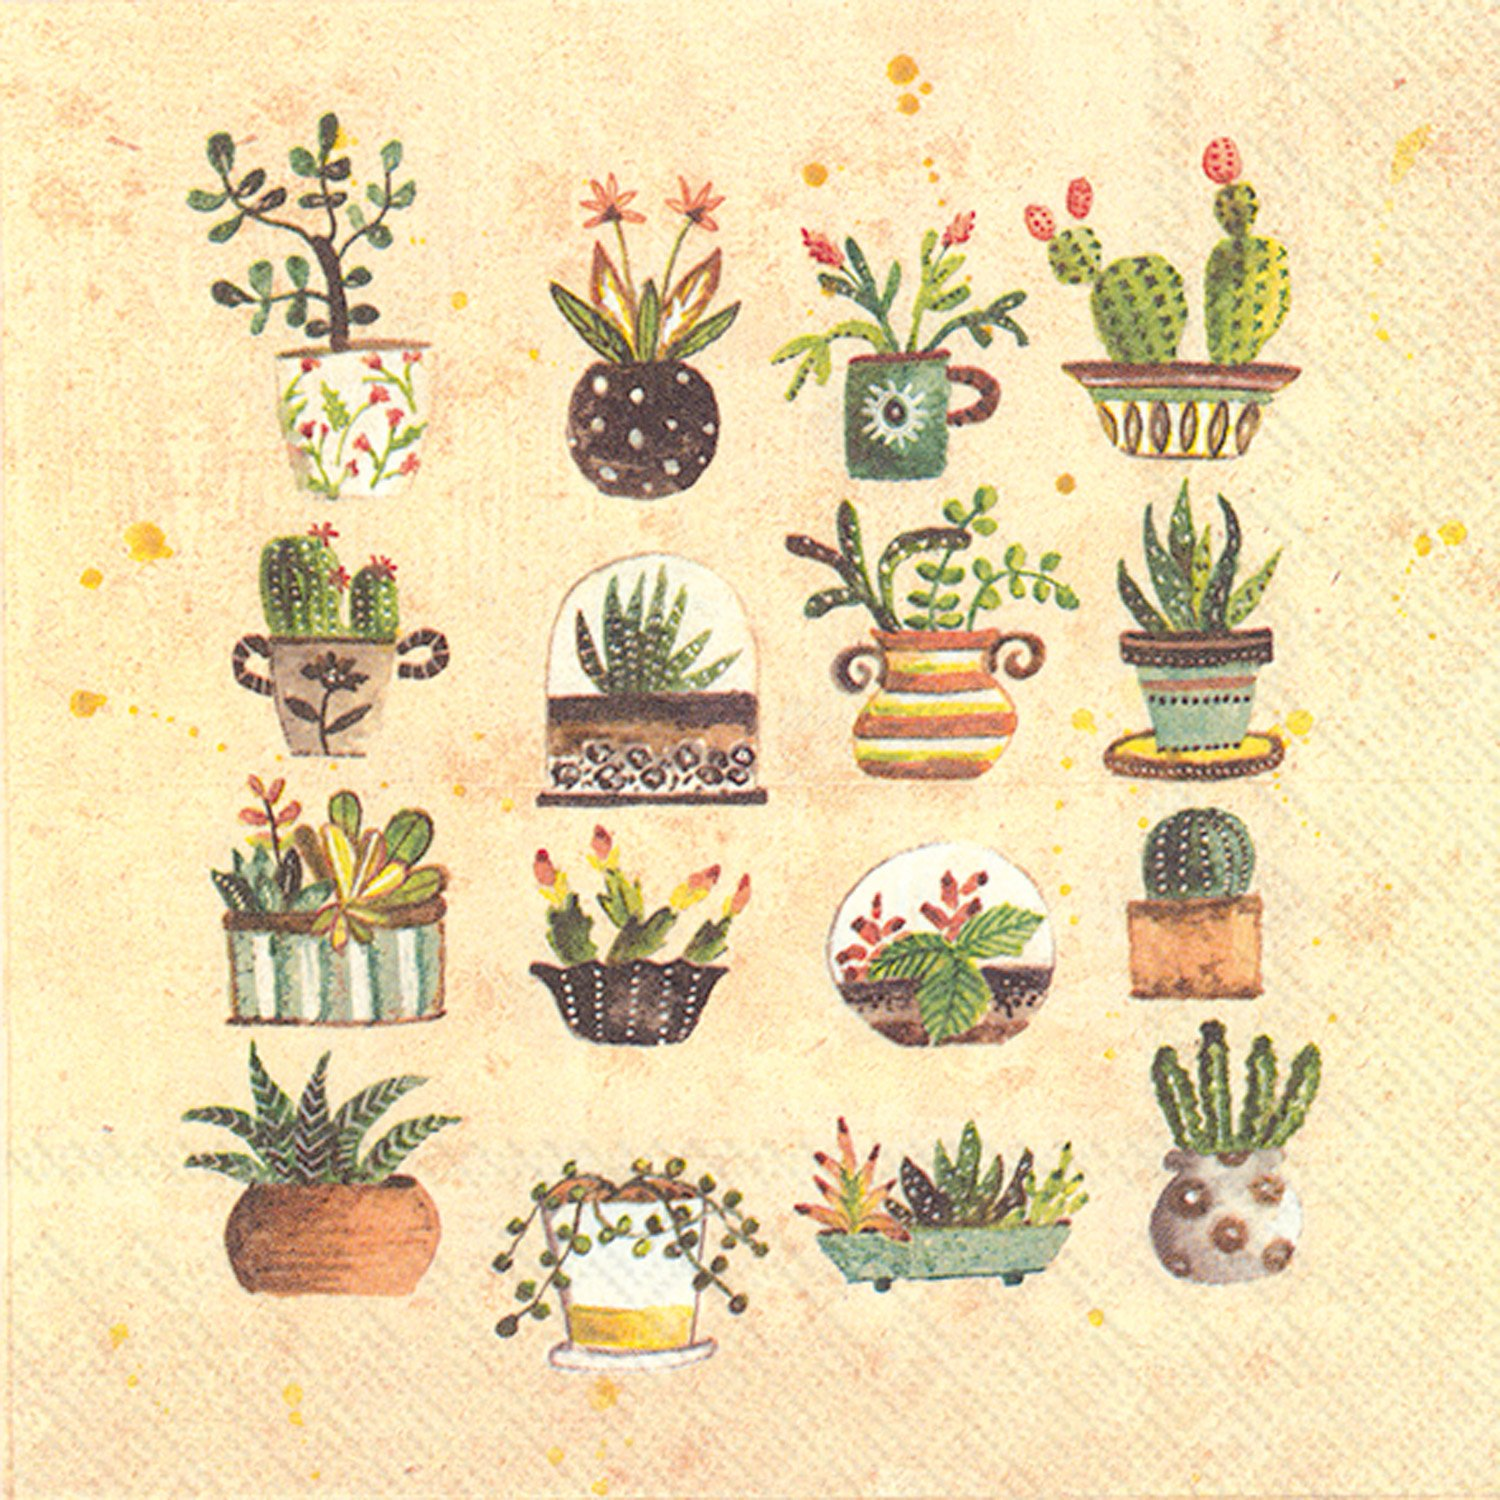 Celebrate the Home Lori Siebert 3-Ply Paper Luncheon Napkins, Succulents, 20 Count